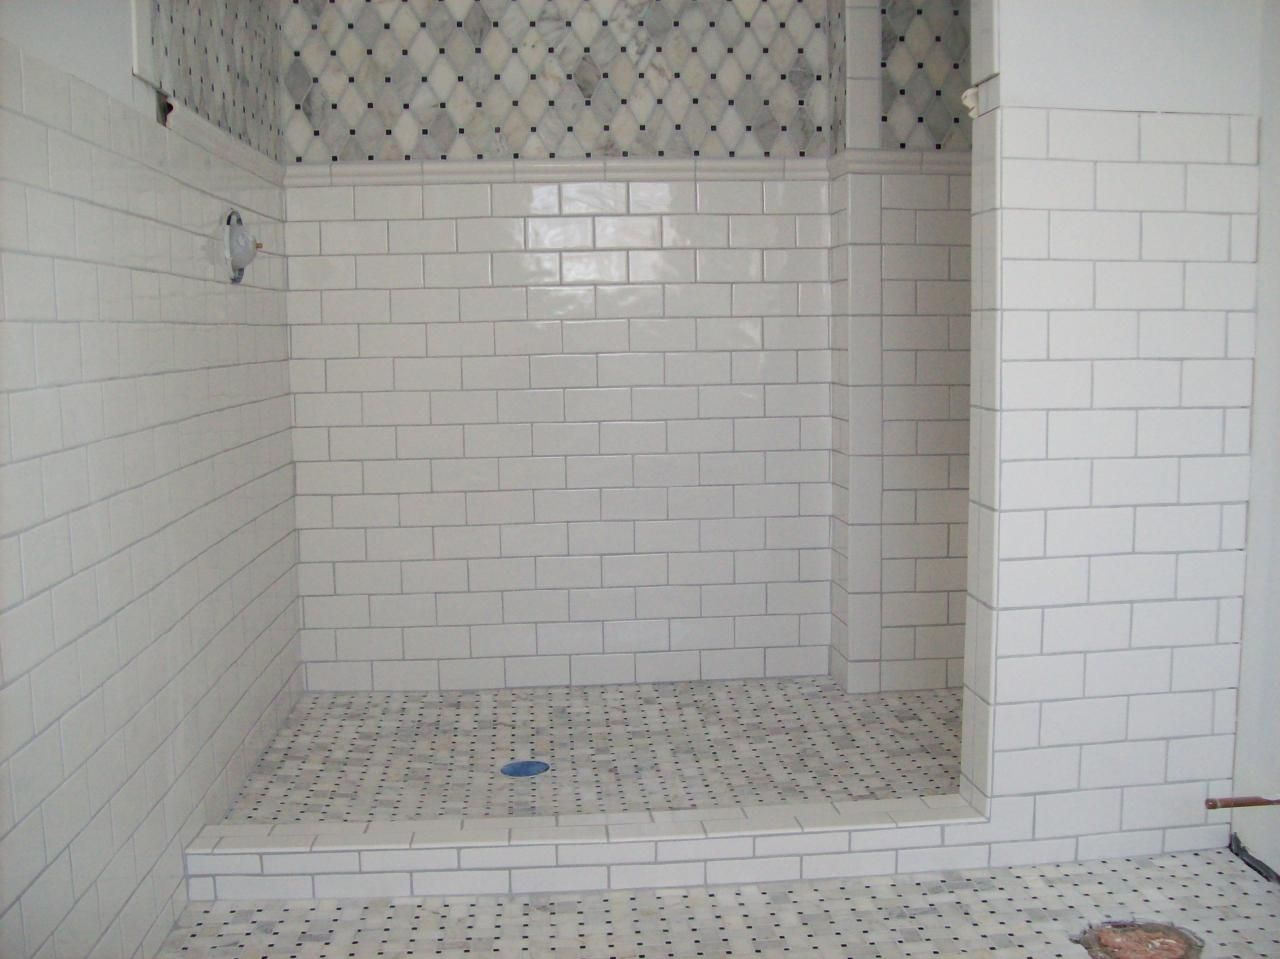 Marble Tile Shower Floor With Ceramic Subway Tile On The Walls Bathrooms Pinterest Marble